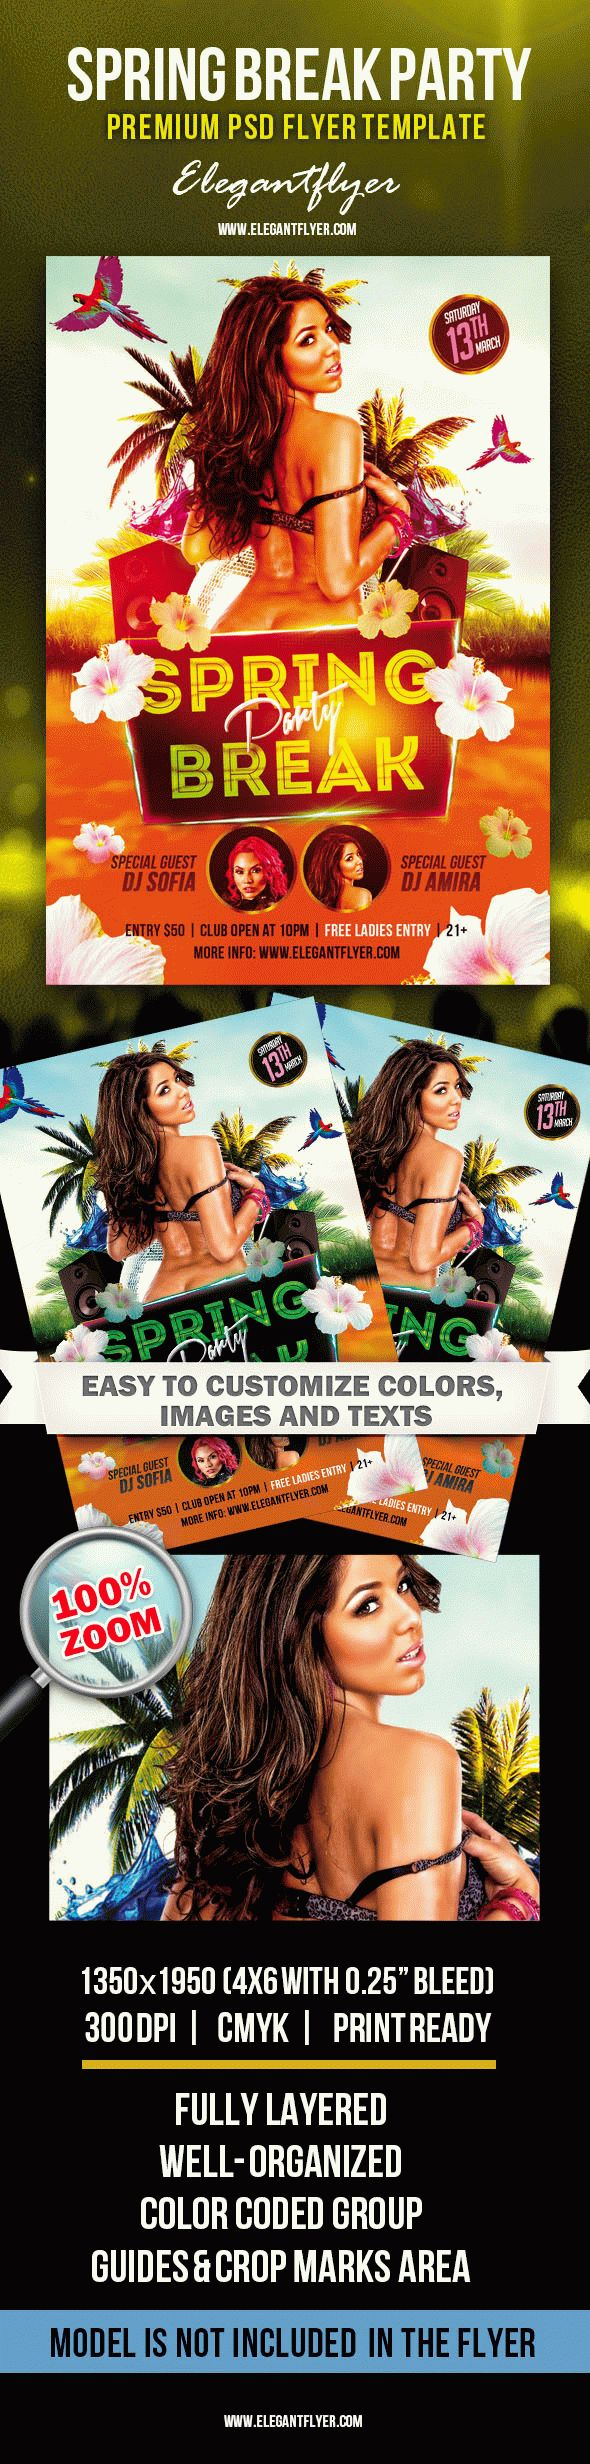 Spring Party – Premium Club flyer PSD Template